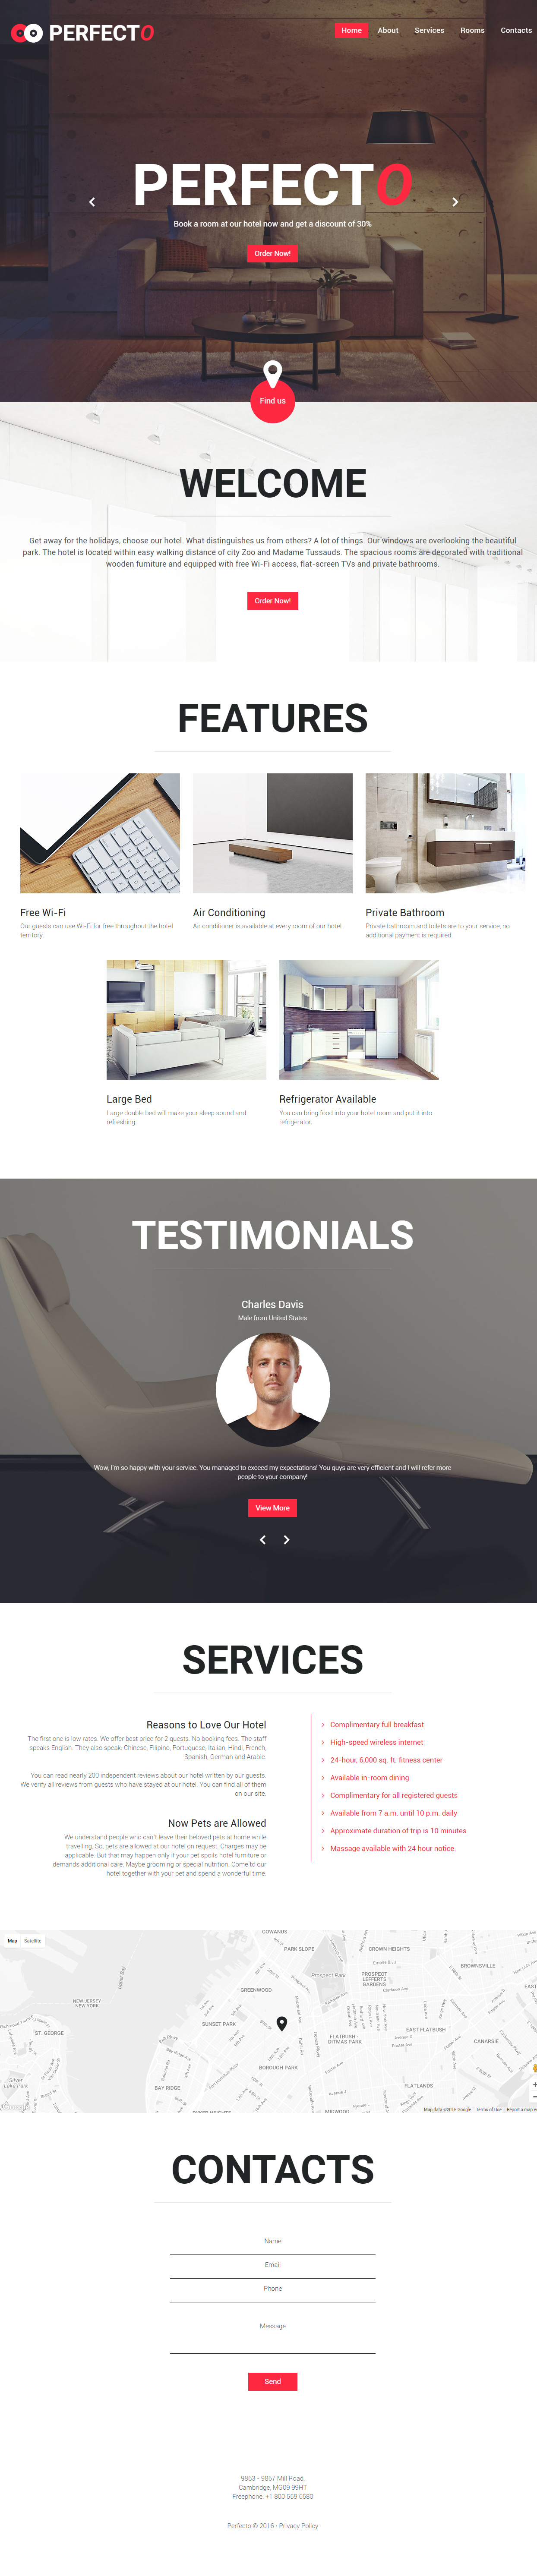 15+ Best Hotel HTML5 Templates 2017 - Responsive Miracle